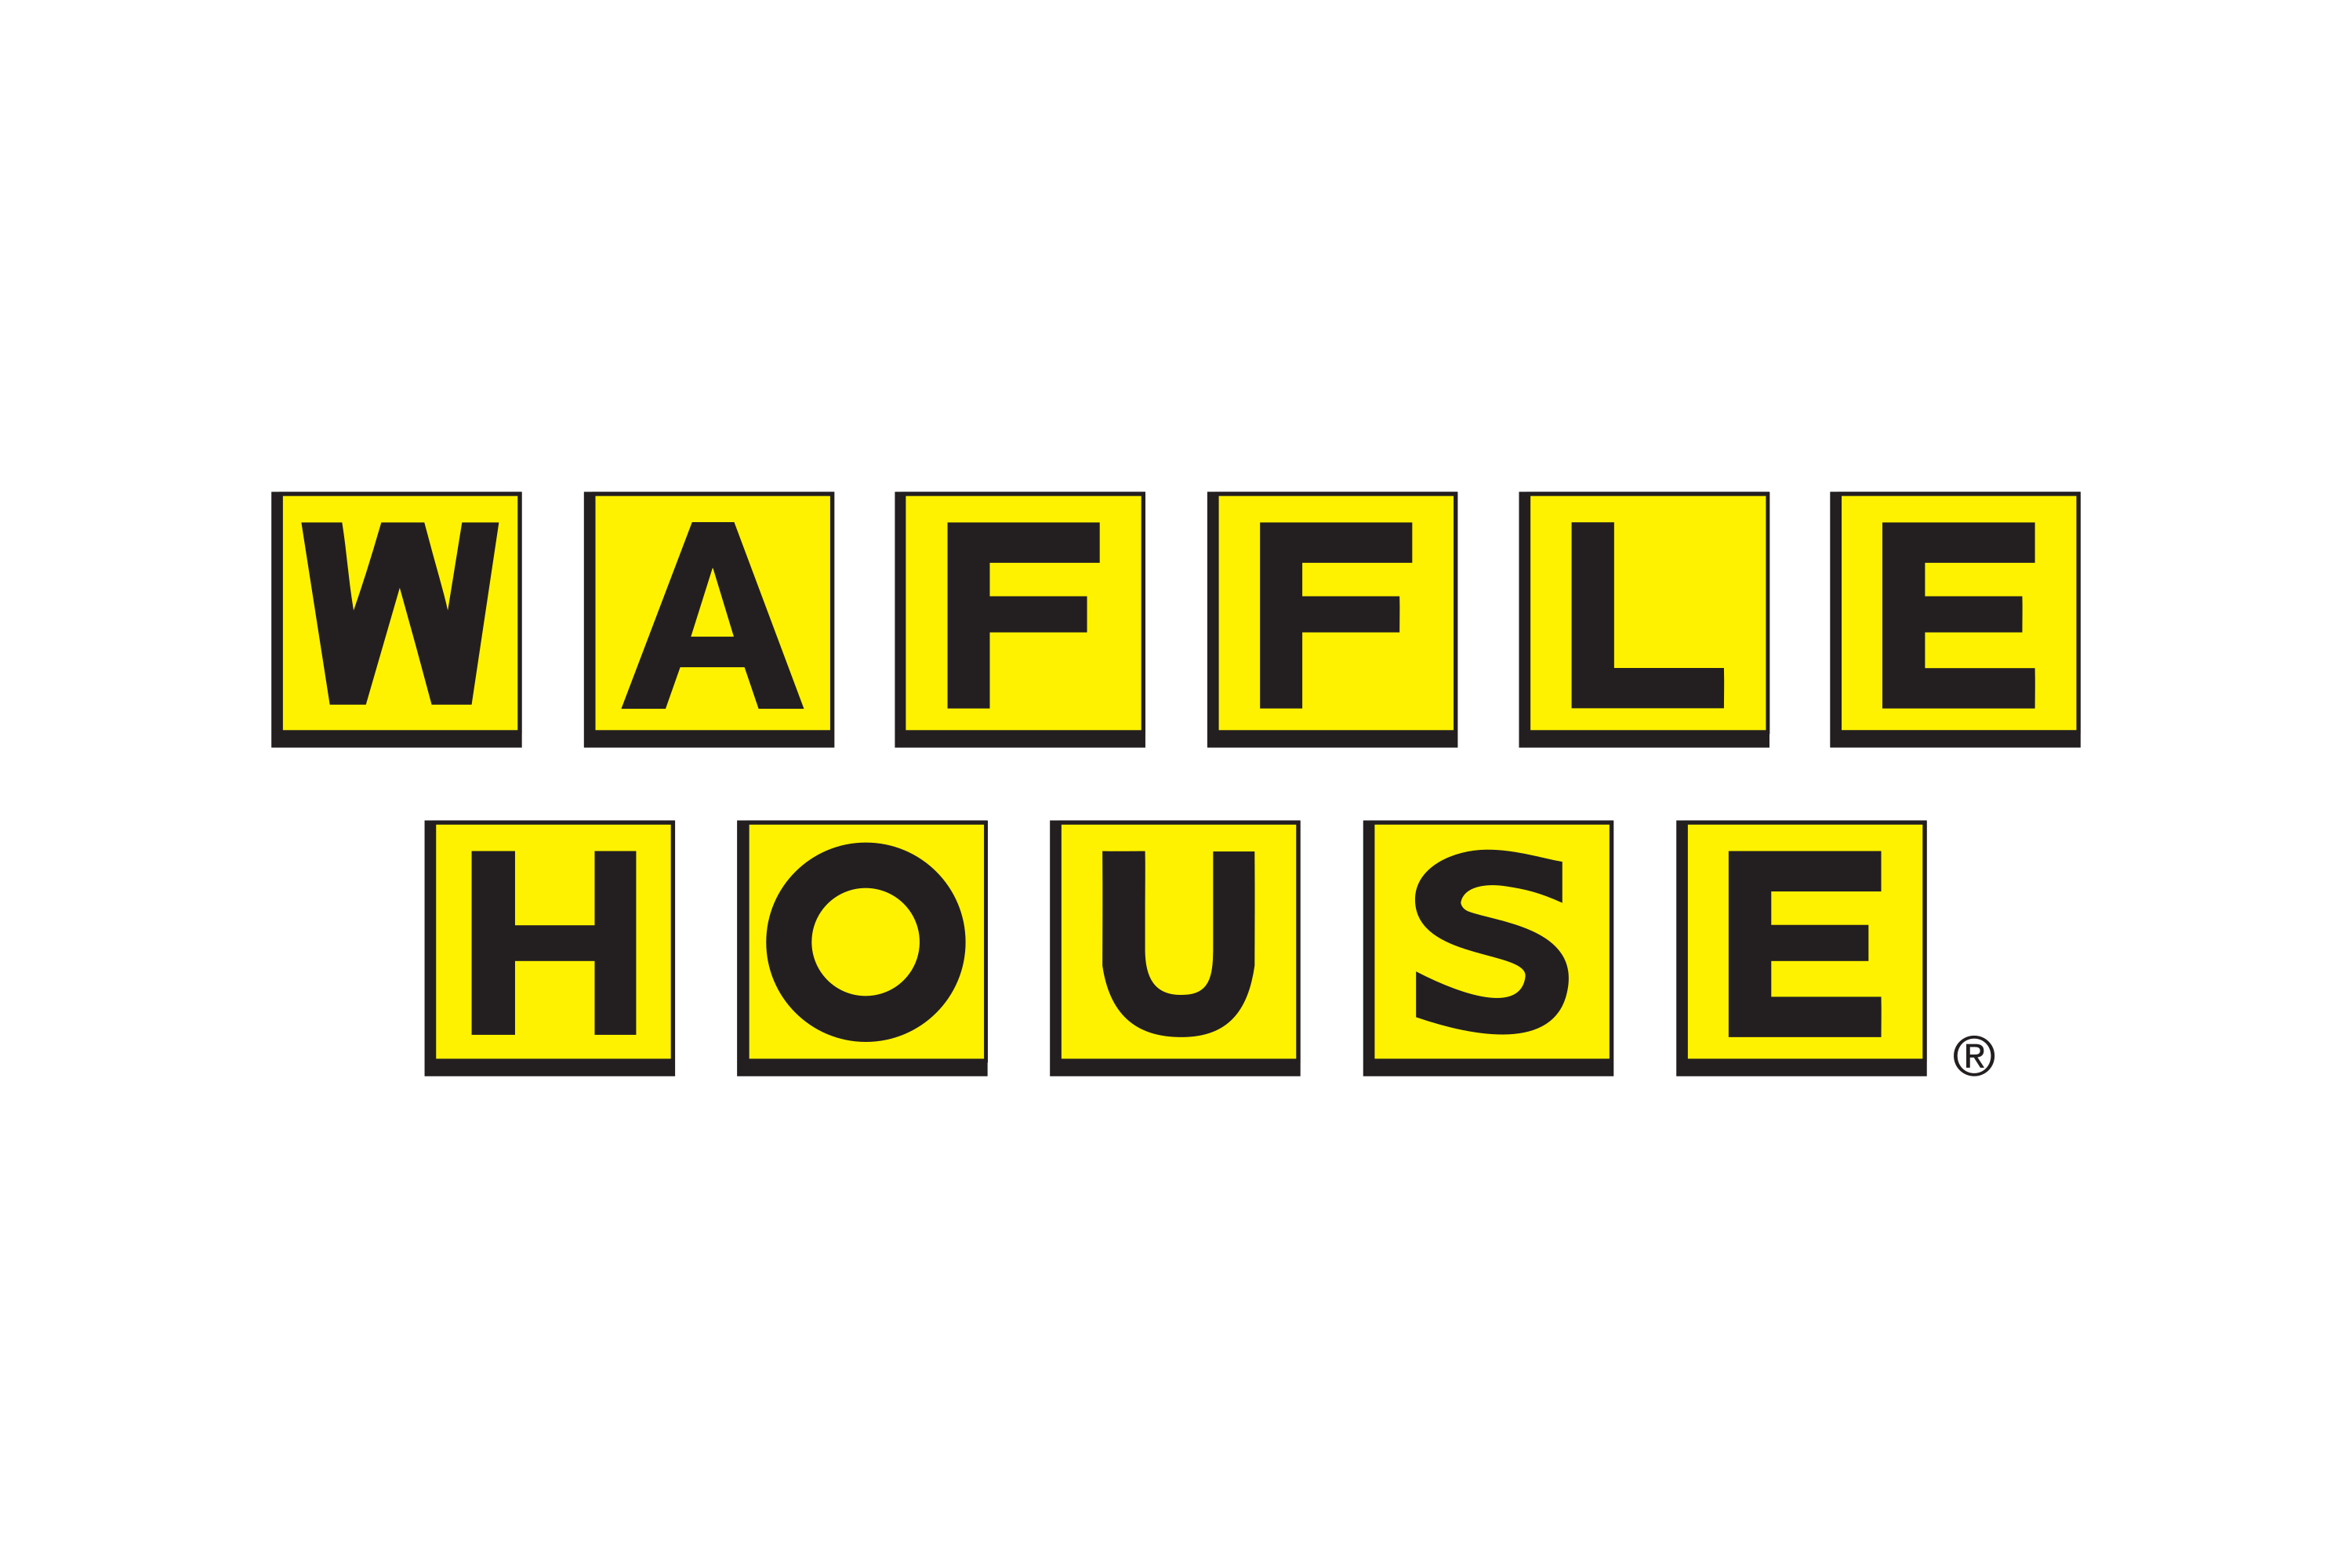 Download Waffle House Logo In Svg Vector Or Png File Format Logo Wine The current status of the logo is active, which means the logo is currently in use. waffle house logo in svg vector